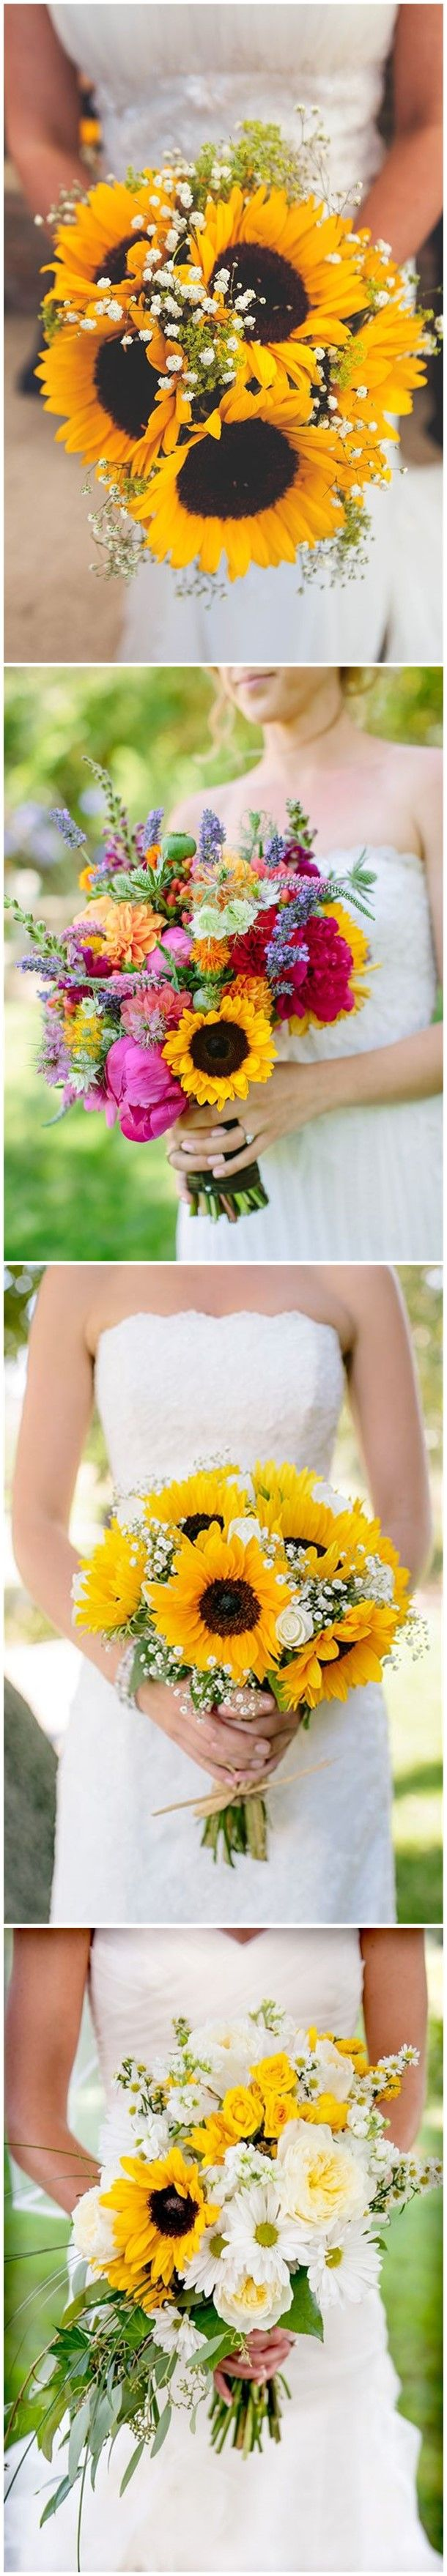 21 Perfect Sunflower Wedding Bouquet Ideas For Summer Wedding